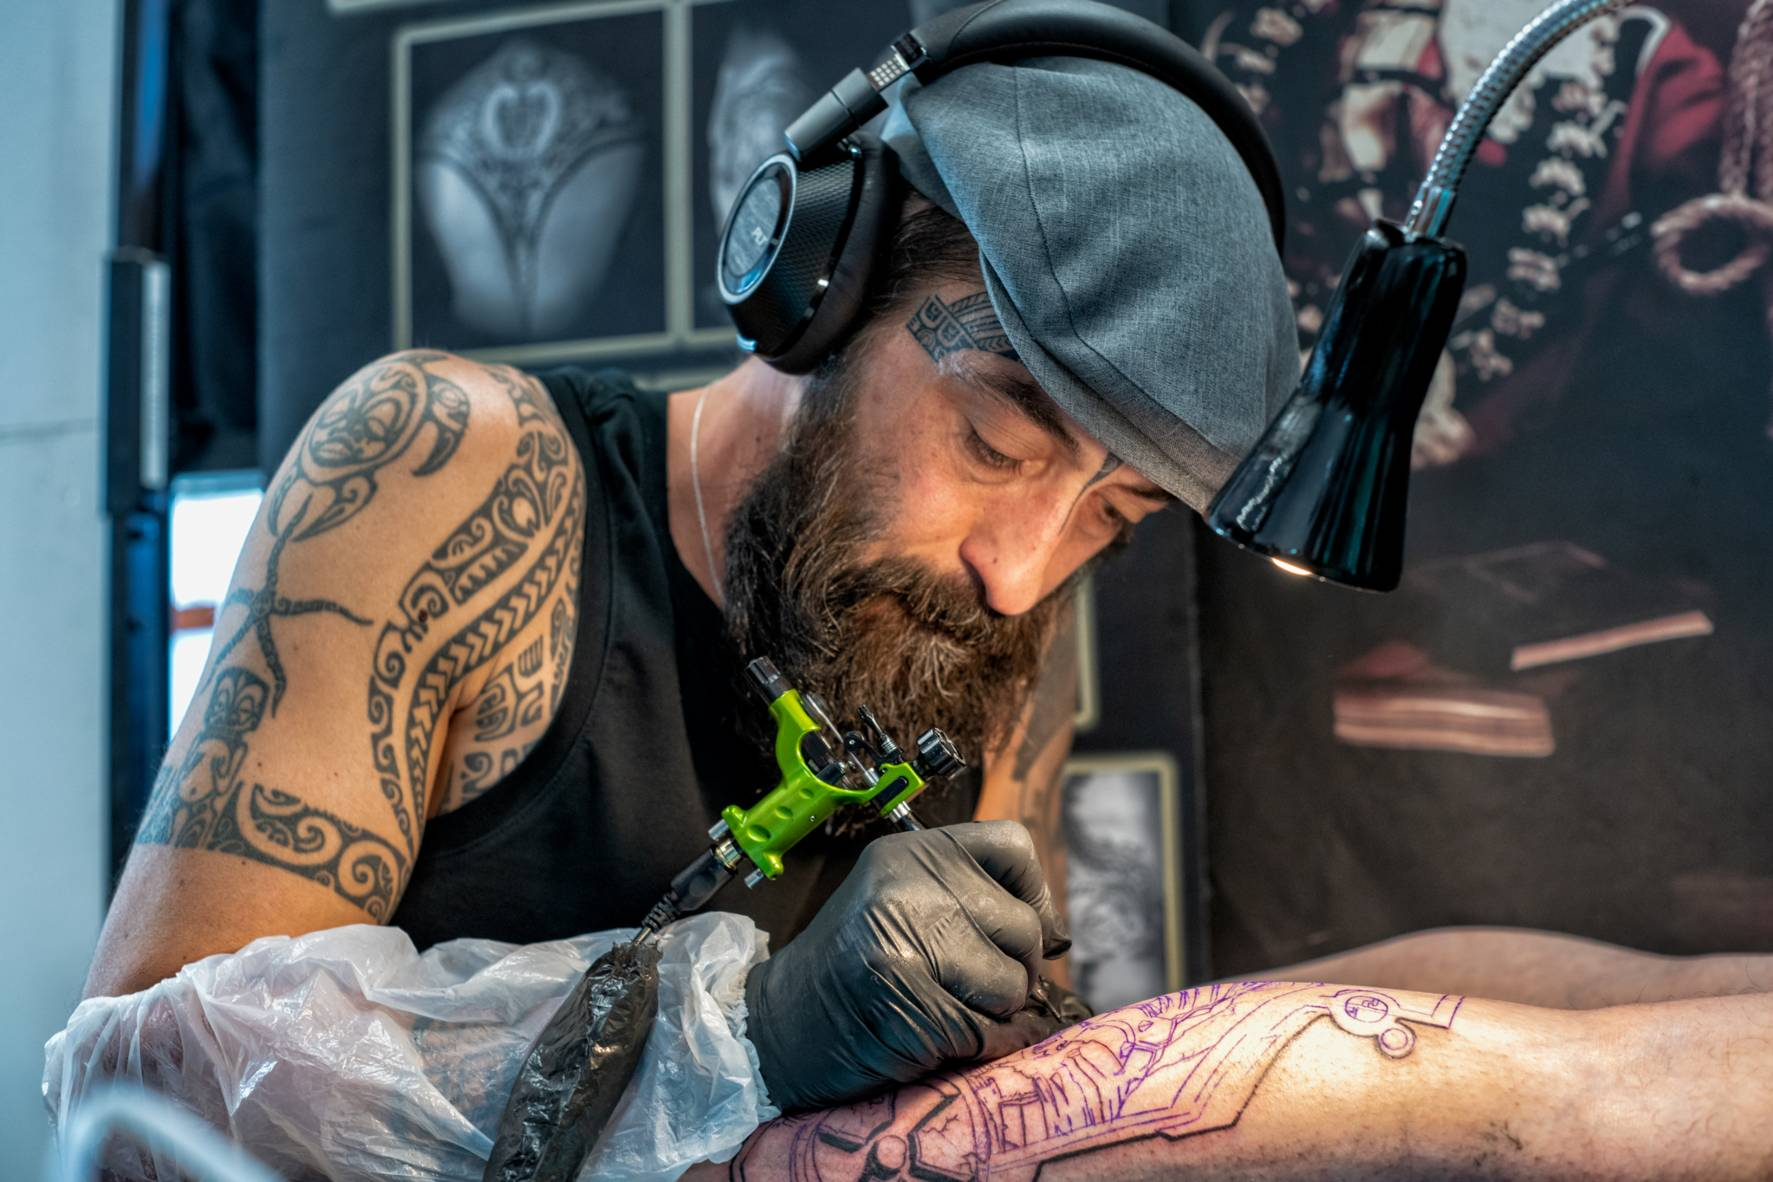 FA_Out_R2_Tattoo_Titisee_2019_02